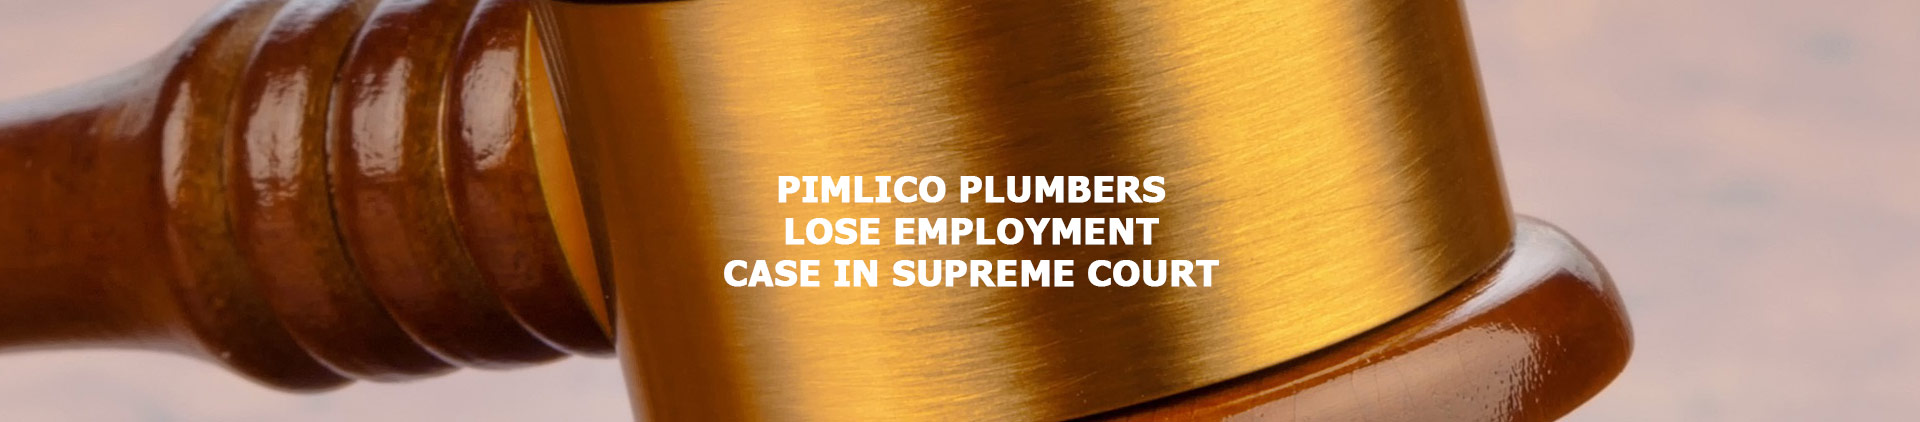 PIMLICO PLUMBERS LOSE EMPLOYMENT CASE IN SUPREME COURT